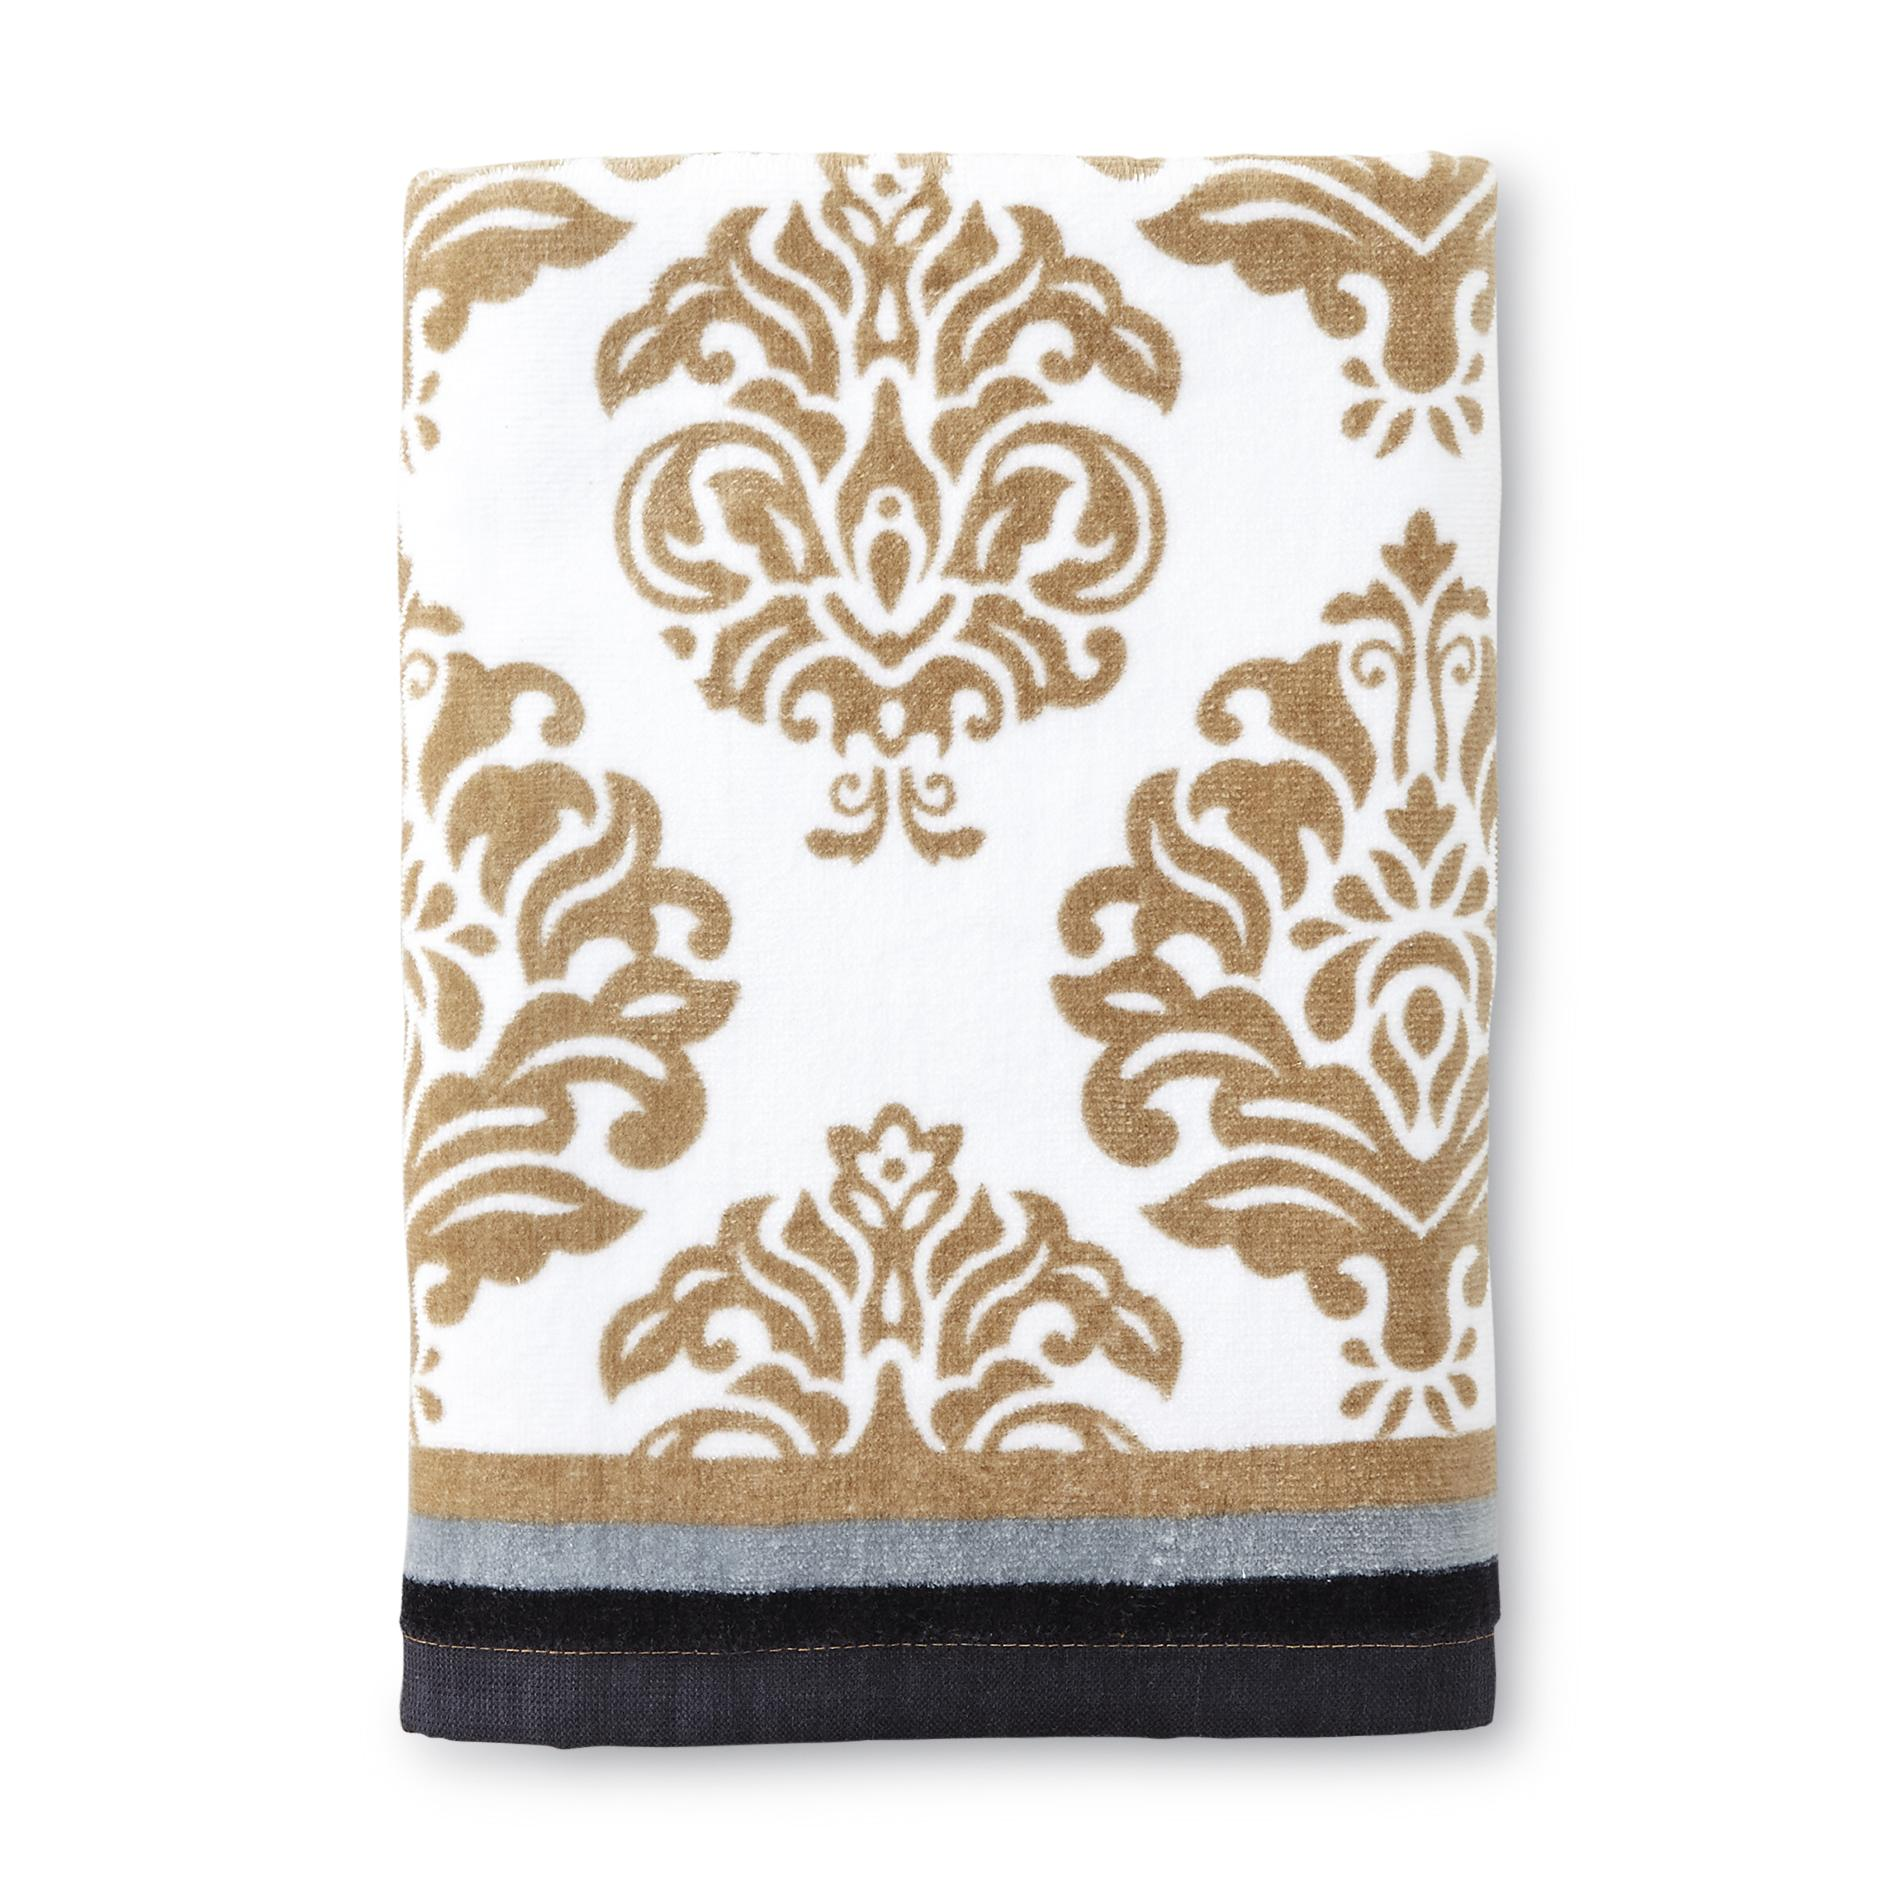 Essential Home Bath Towel - Damask Print